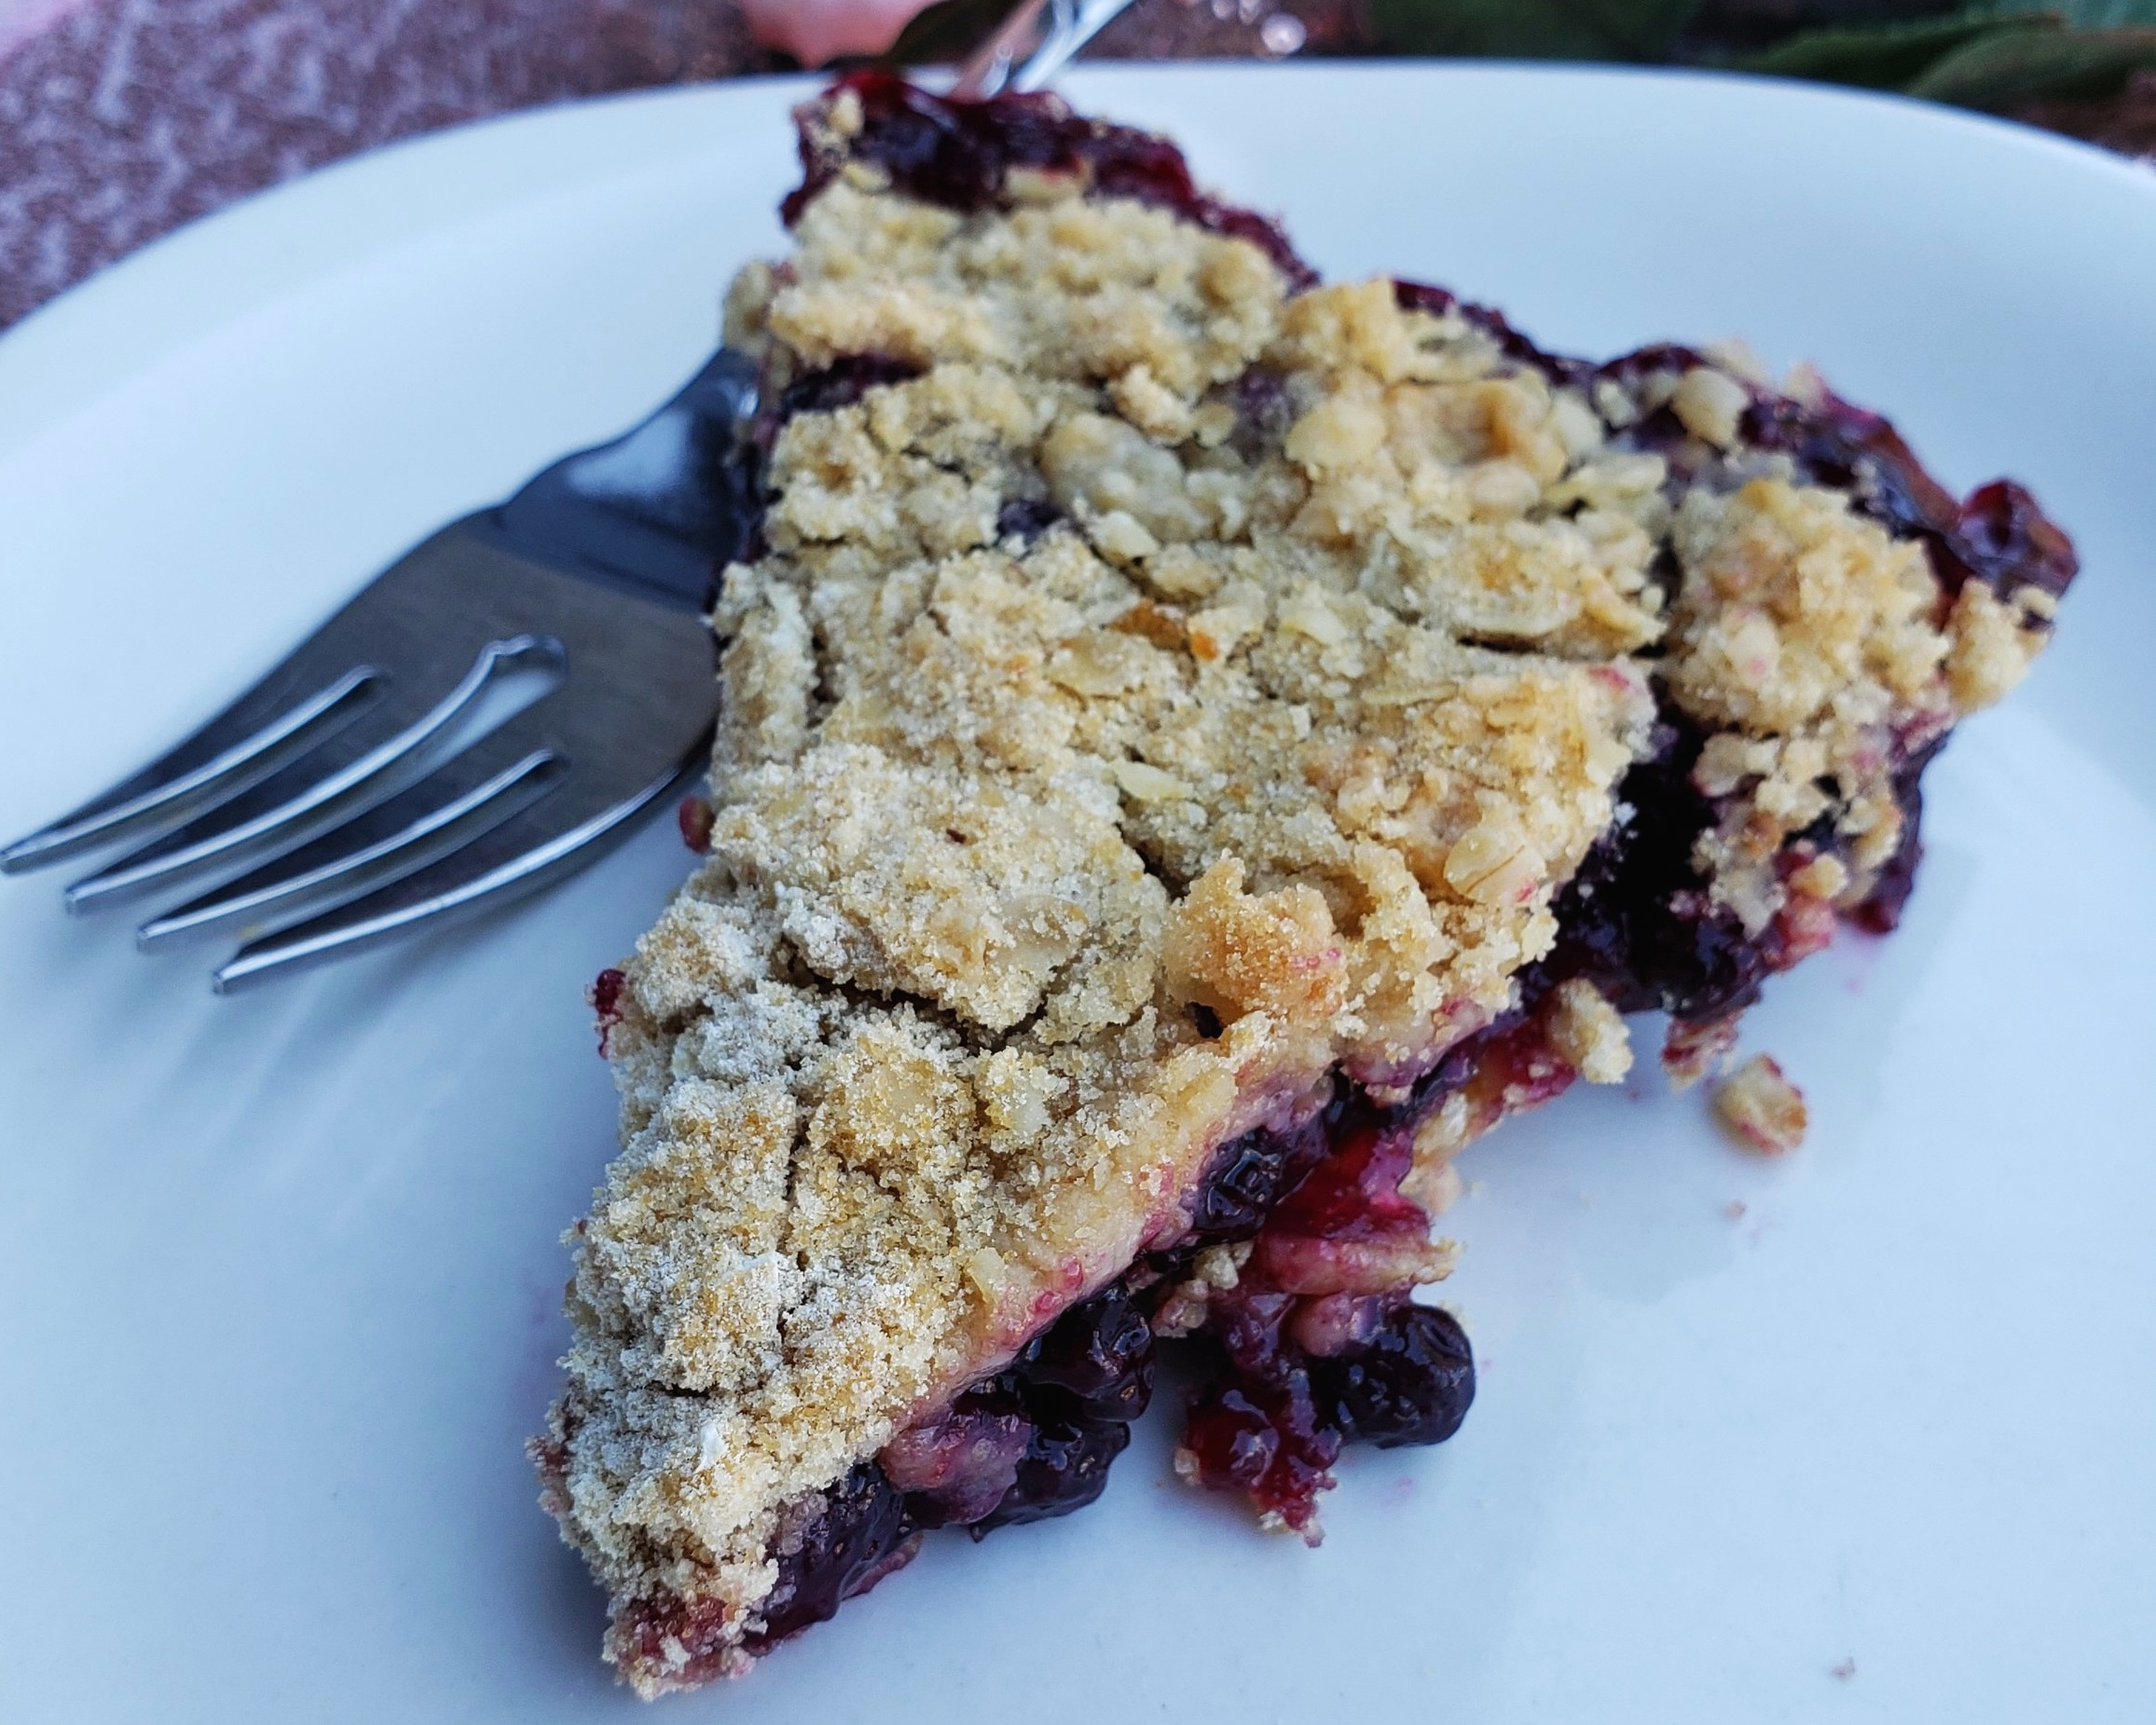 """1 cup flour  1 cup quick oats  3/4 cup brown sugar  1/2 cup butter  1/2 cup white sugar  1/3 cup flour  1 Tbsp cornstarch  2 Tbsp lemon juice  5 cups blueberries  Preheat oven to 350 degrees F. Lightly grease 9"""" pie plate.  Crumble:  Mix together flour, oats, brown sugar and butter until crumbly. Press half of mixture into greased 9"""" pie plate.   Filling:  Mix together white sugar, flour, cornstarch, lemon juice and blueberries. Mixture will be thick.  Spoon blueberry mixture over base and top with rest of the crumble. Bake for 30 minutes or until golden brown. Serve warm with ice cream. So delicious!"""